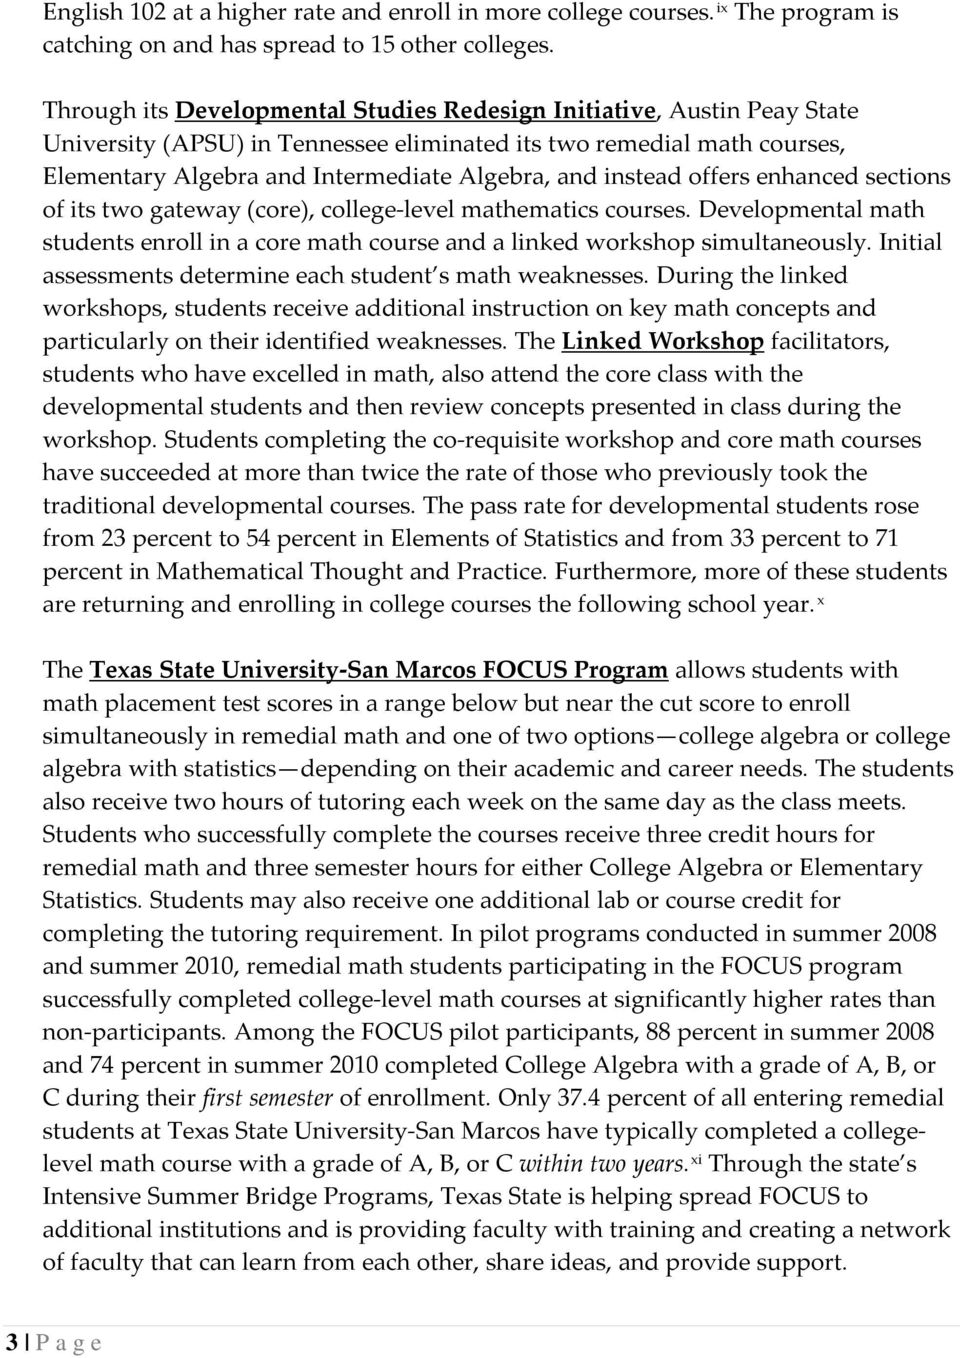 instead offers enhanced sections of its two gateway (core), college-level mathematics courses. Developmental math students enroll in a core math course and a linked workshop simultaneously.